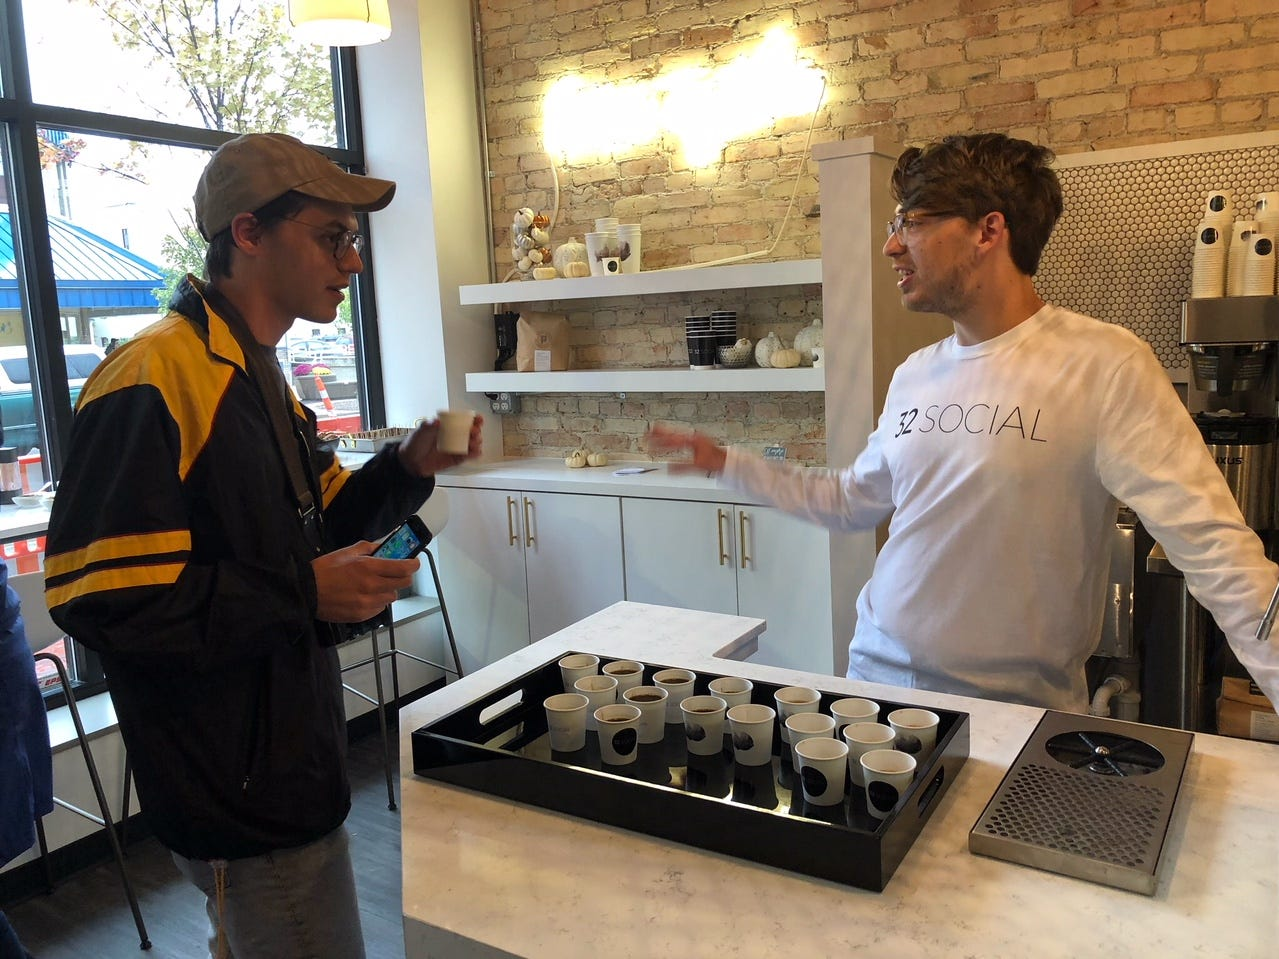 Caleb Minear, left, talks to his brother Jake Minear at 32 Social. The coffee shop had samples Friday night during Fall into the Arts and looks to open soon.